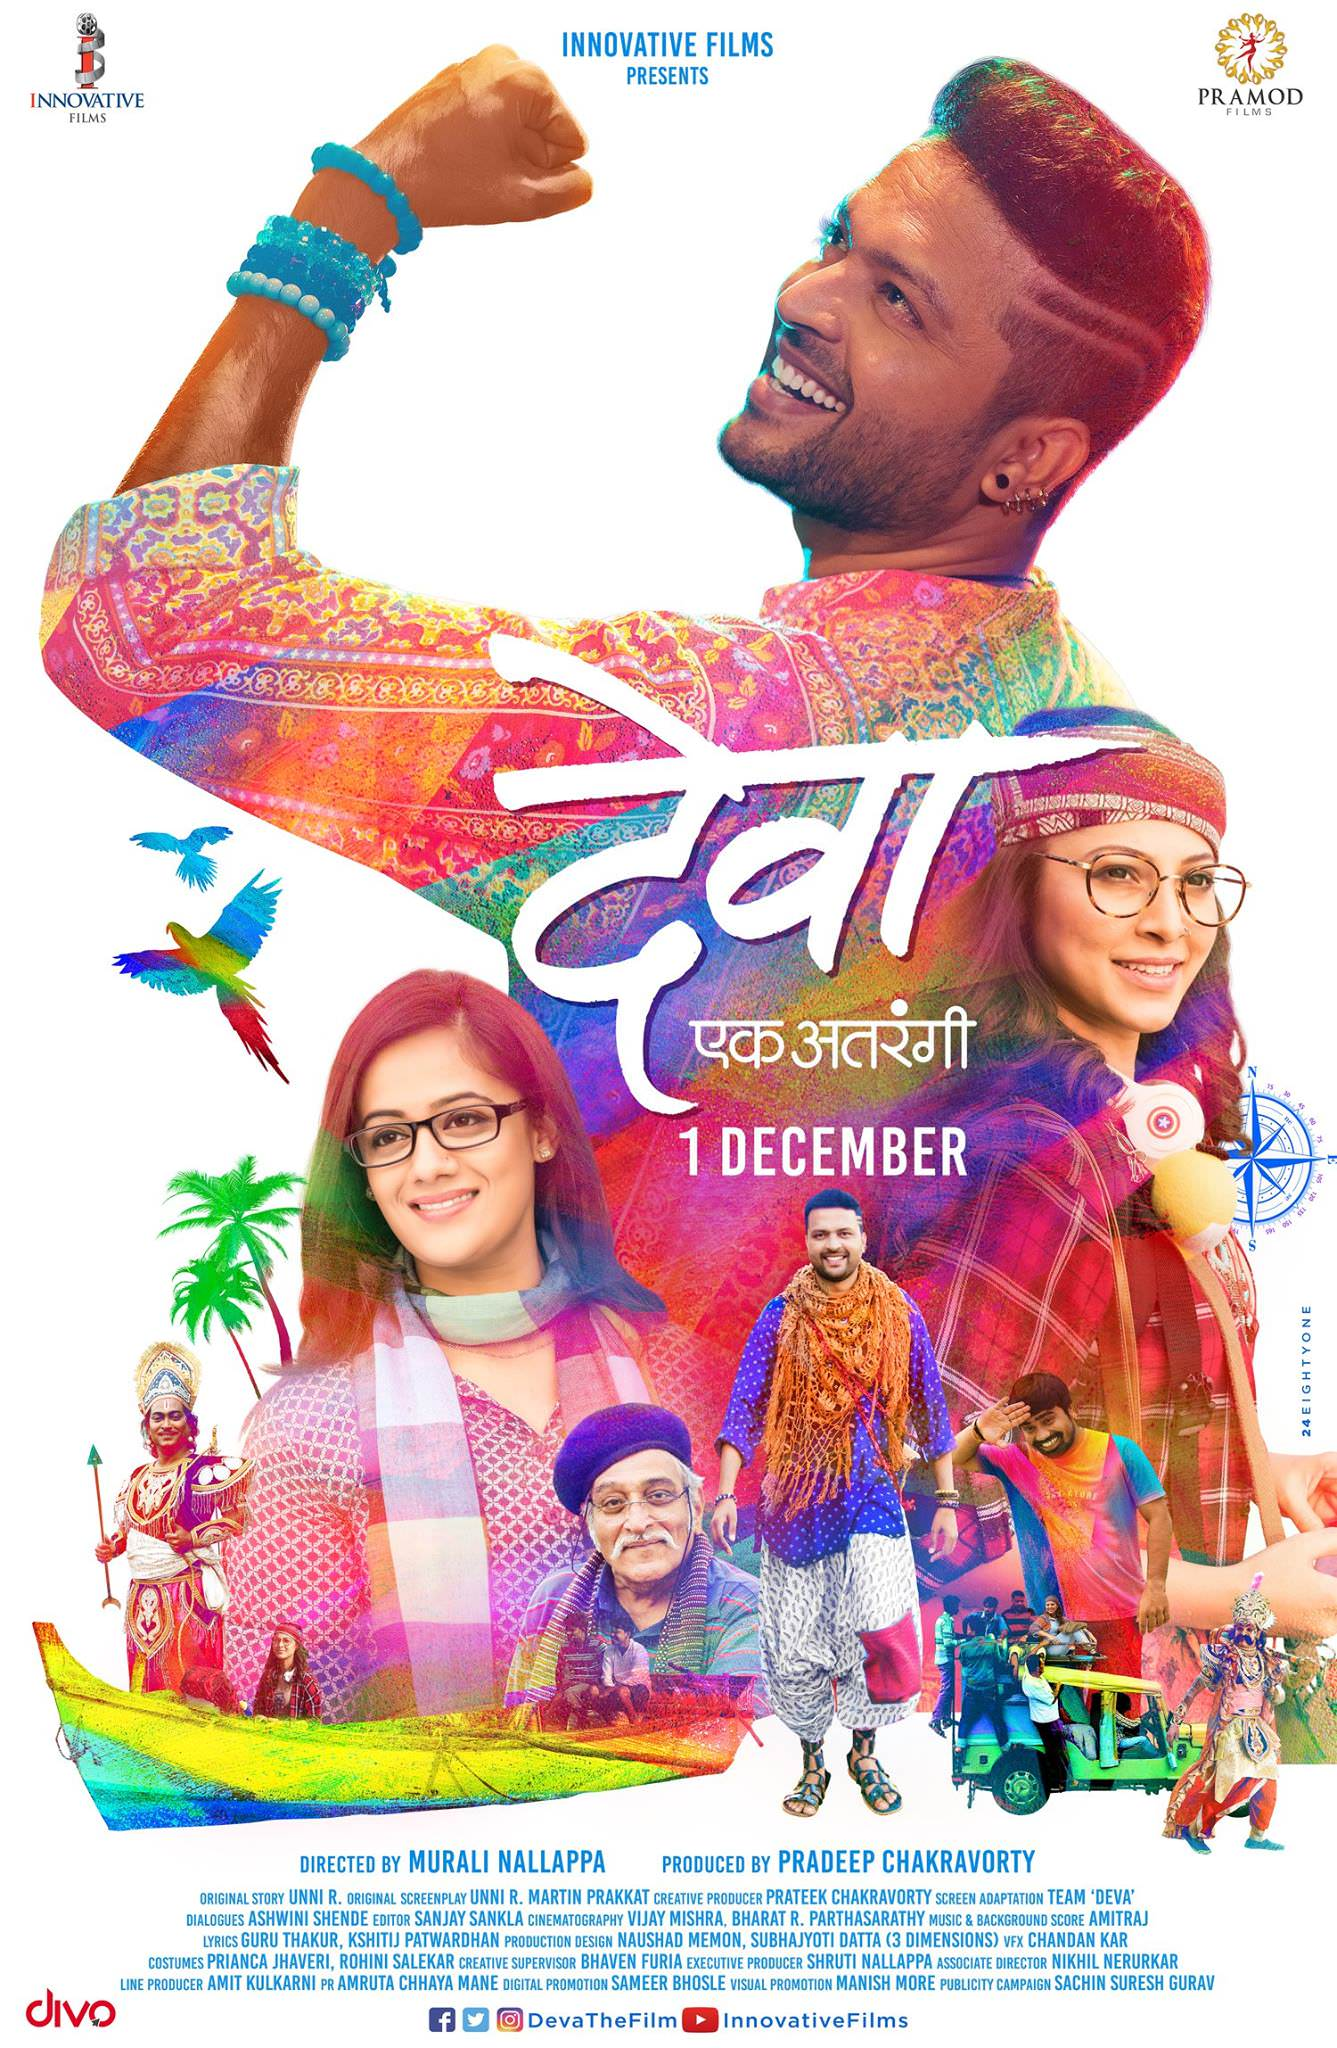 Deva (2017) - Marathi Movie Cast Wiki Trailer Release Date